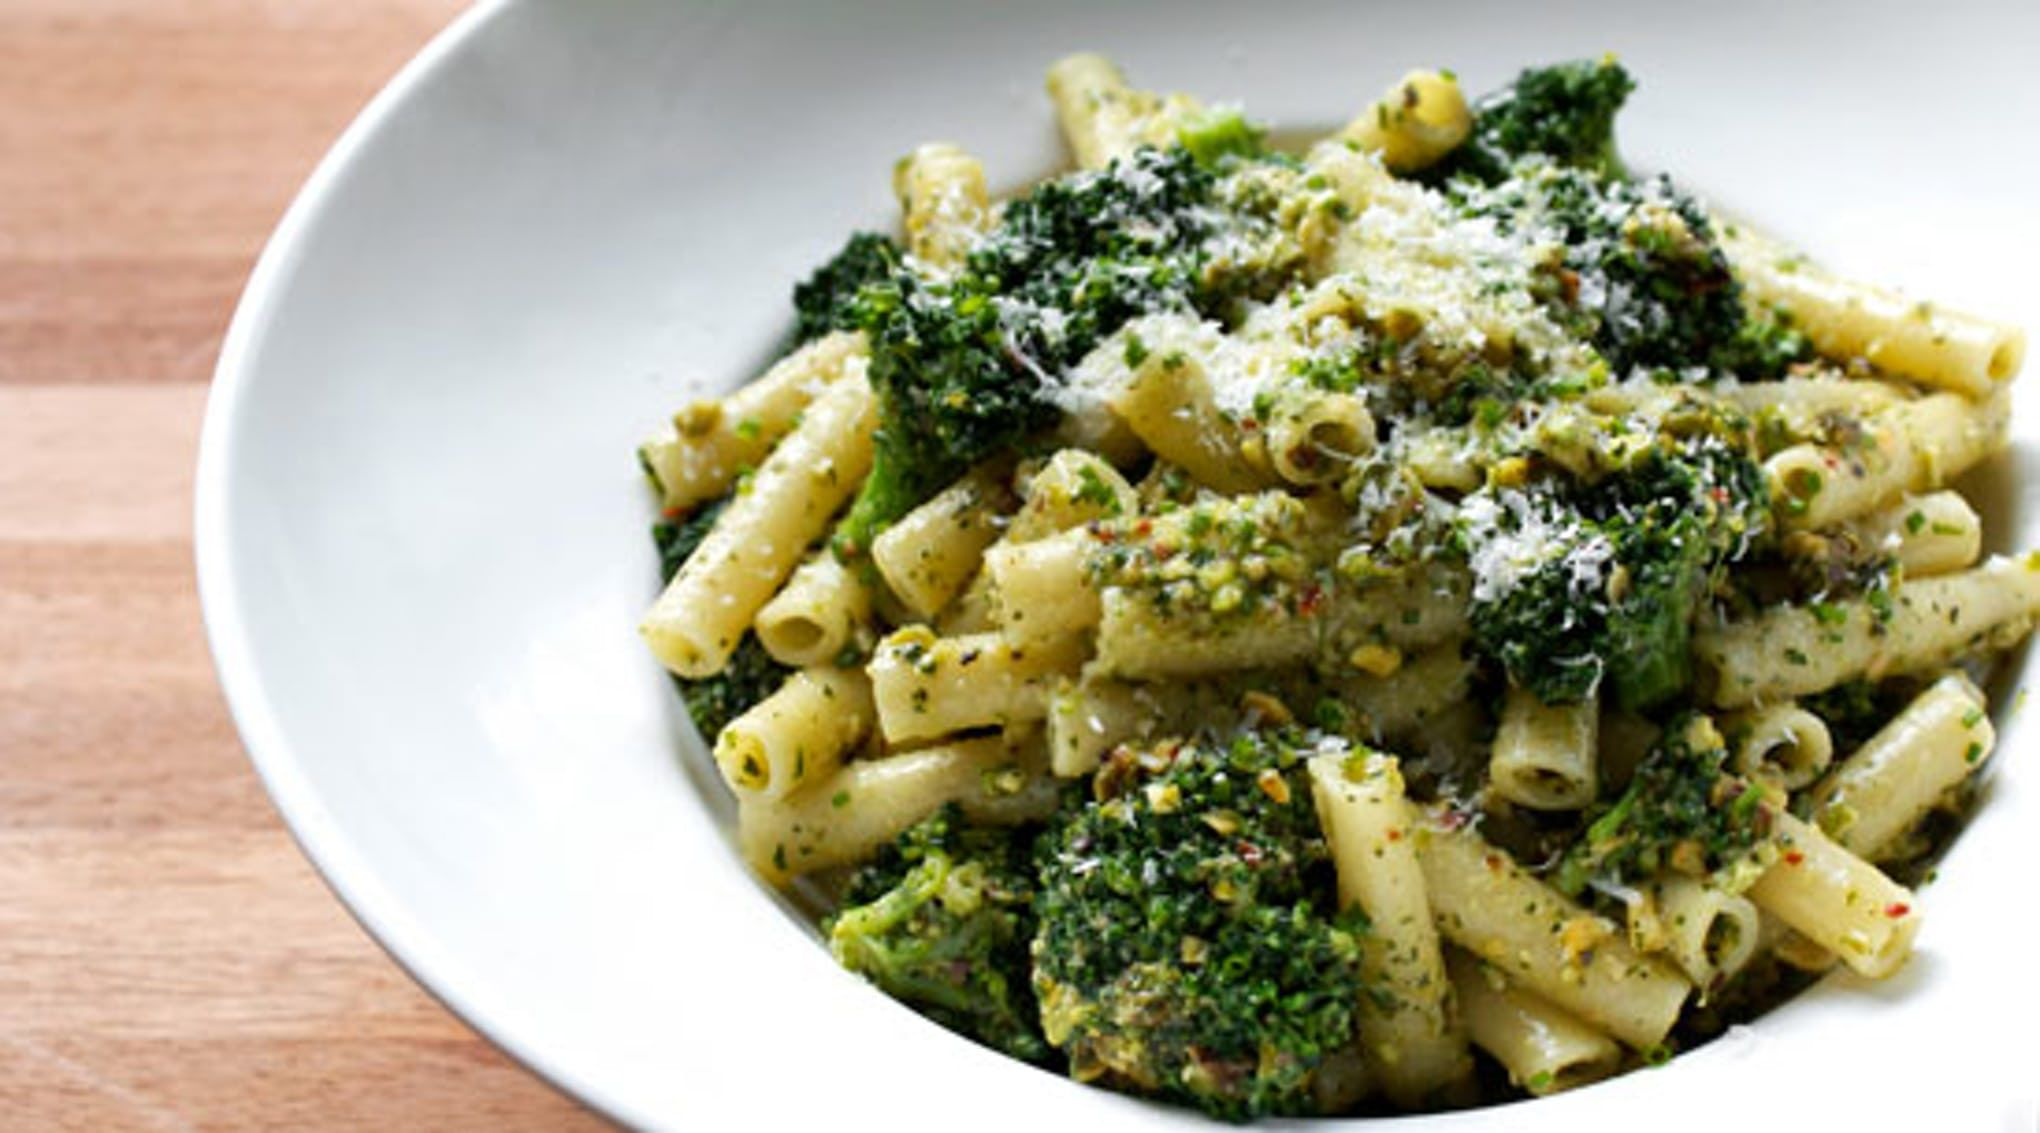 Pasta with Pistachios, Meyer Lemon and Broccoli